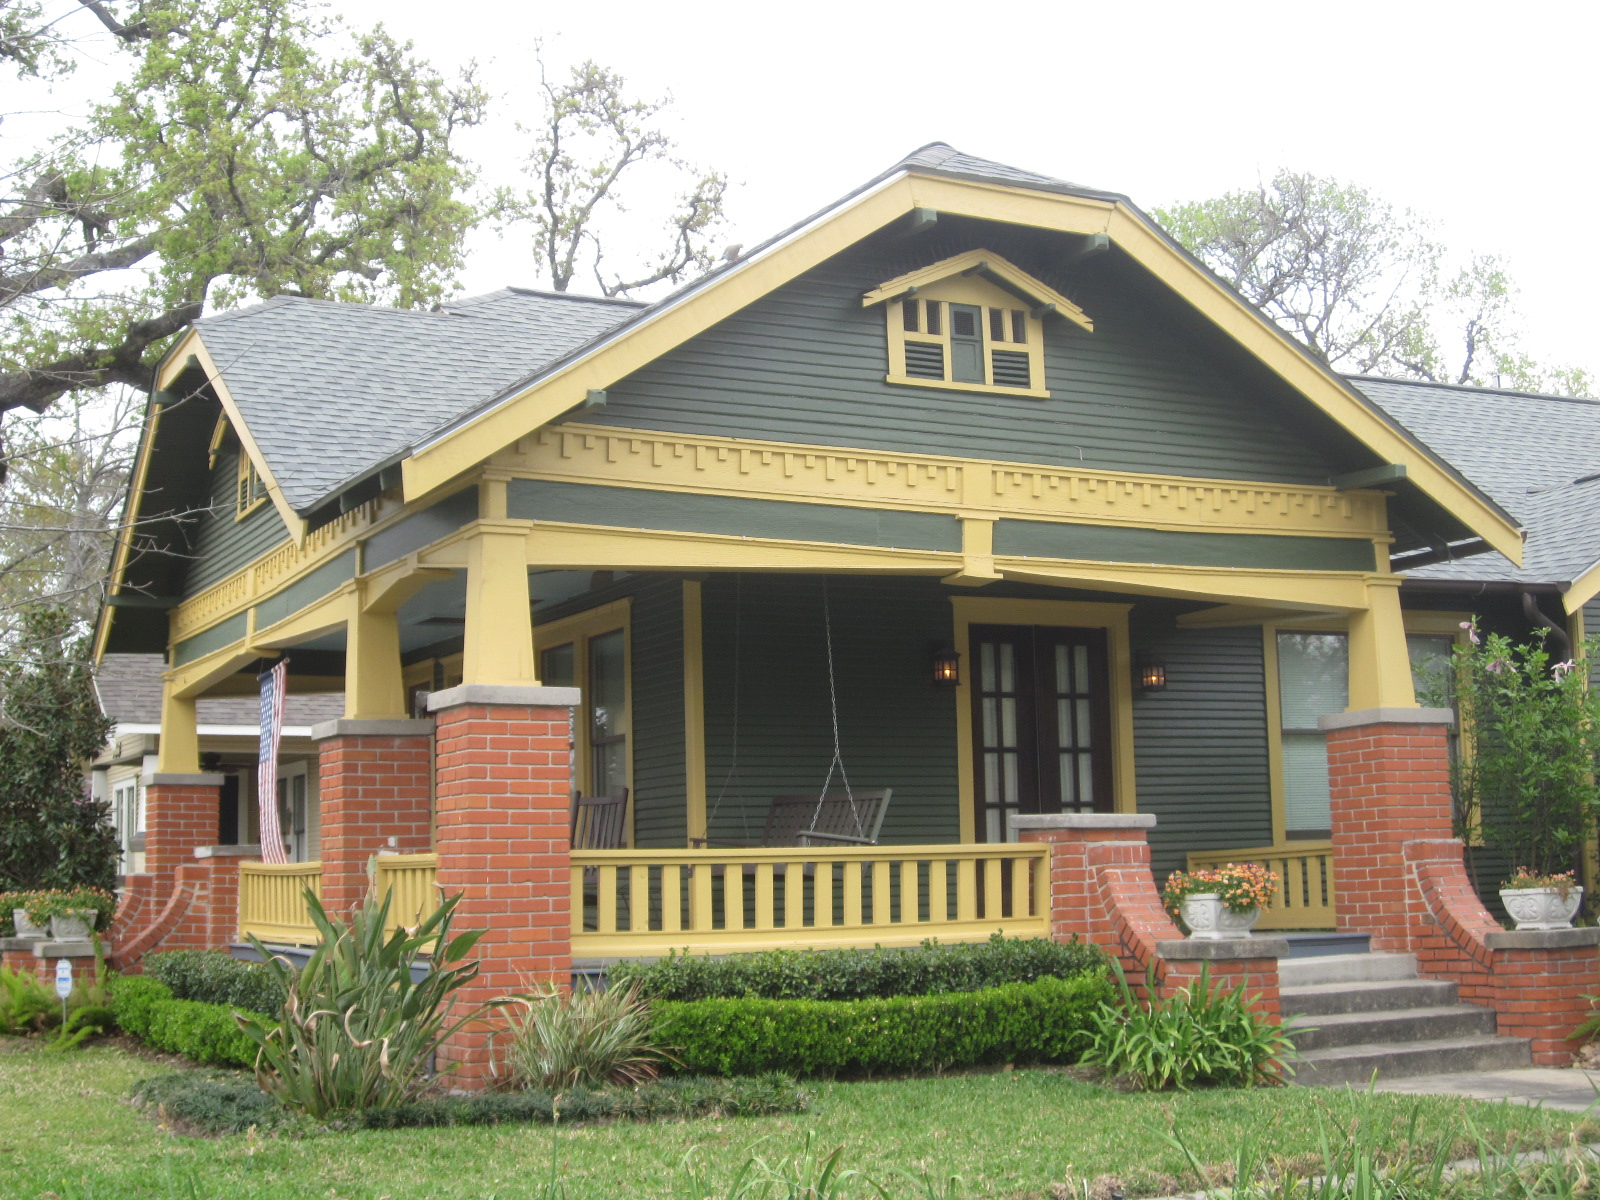 Bungalow house colors bungalow exterior paint color for Exterior house stain color schemes